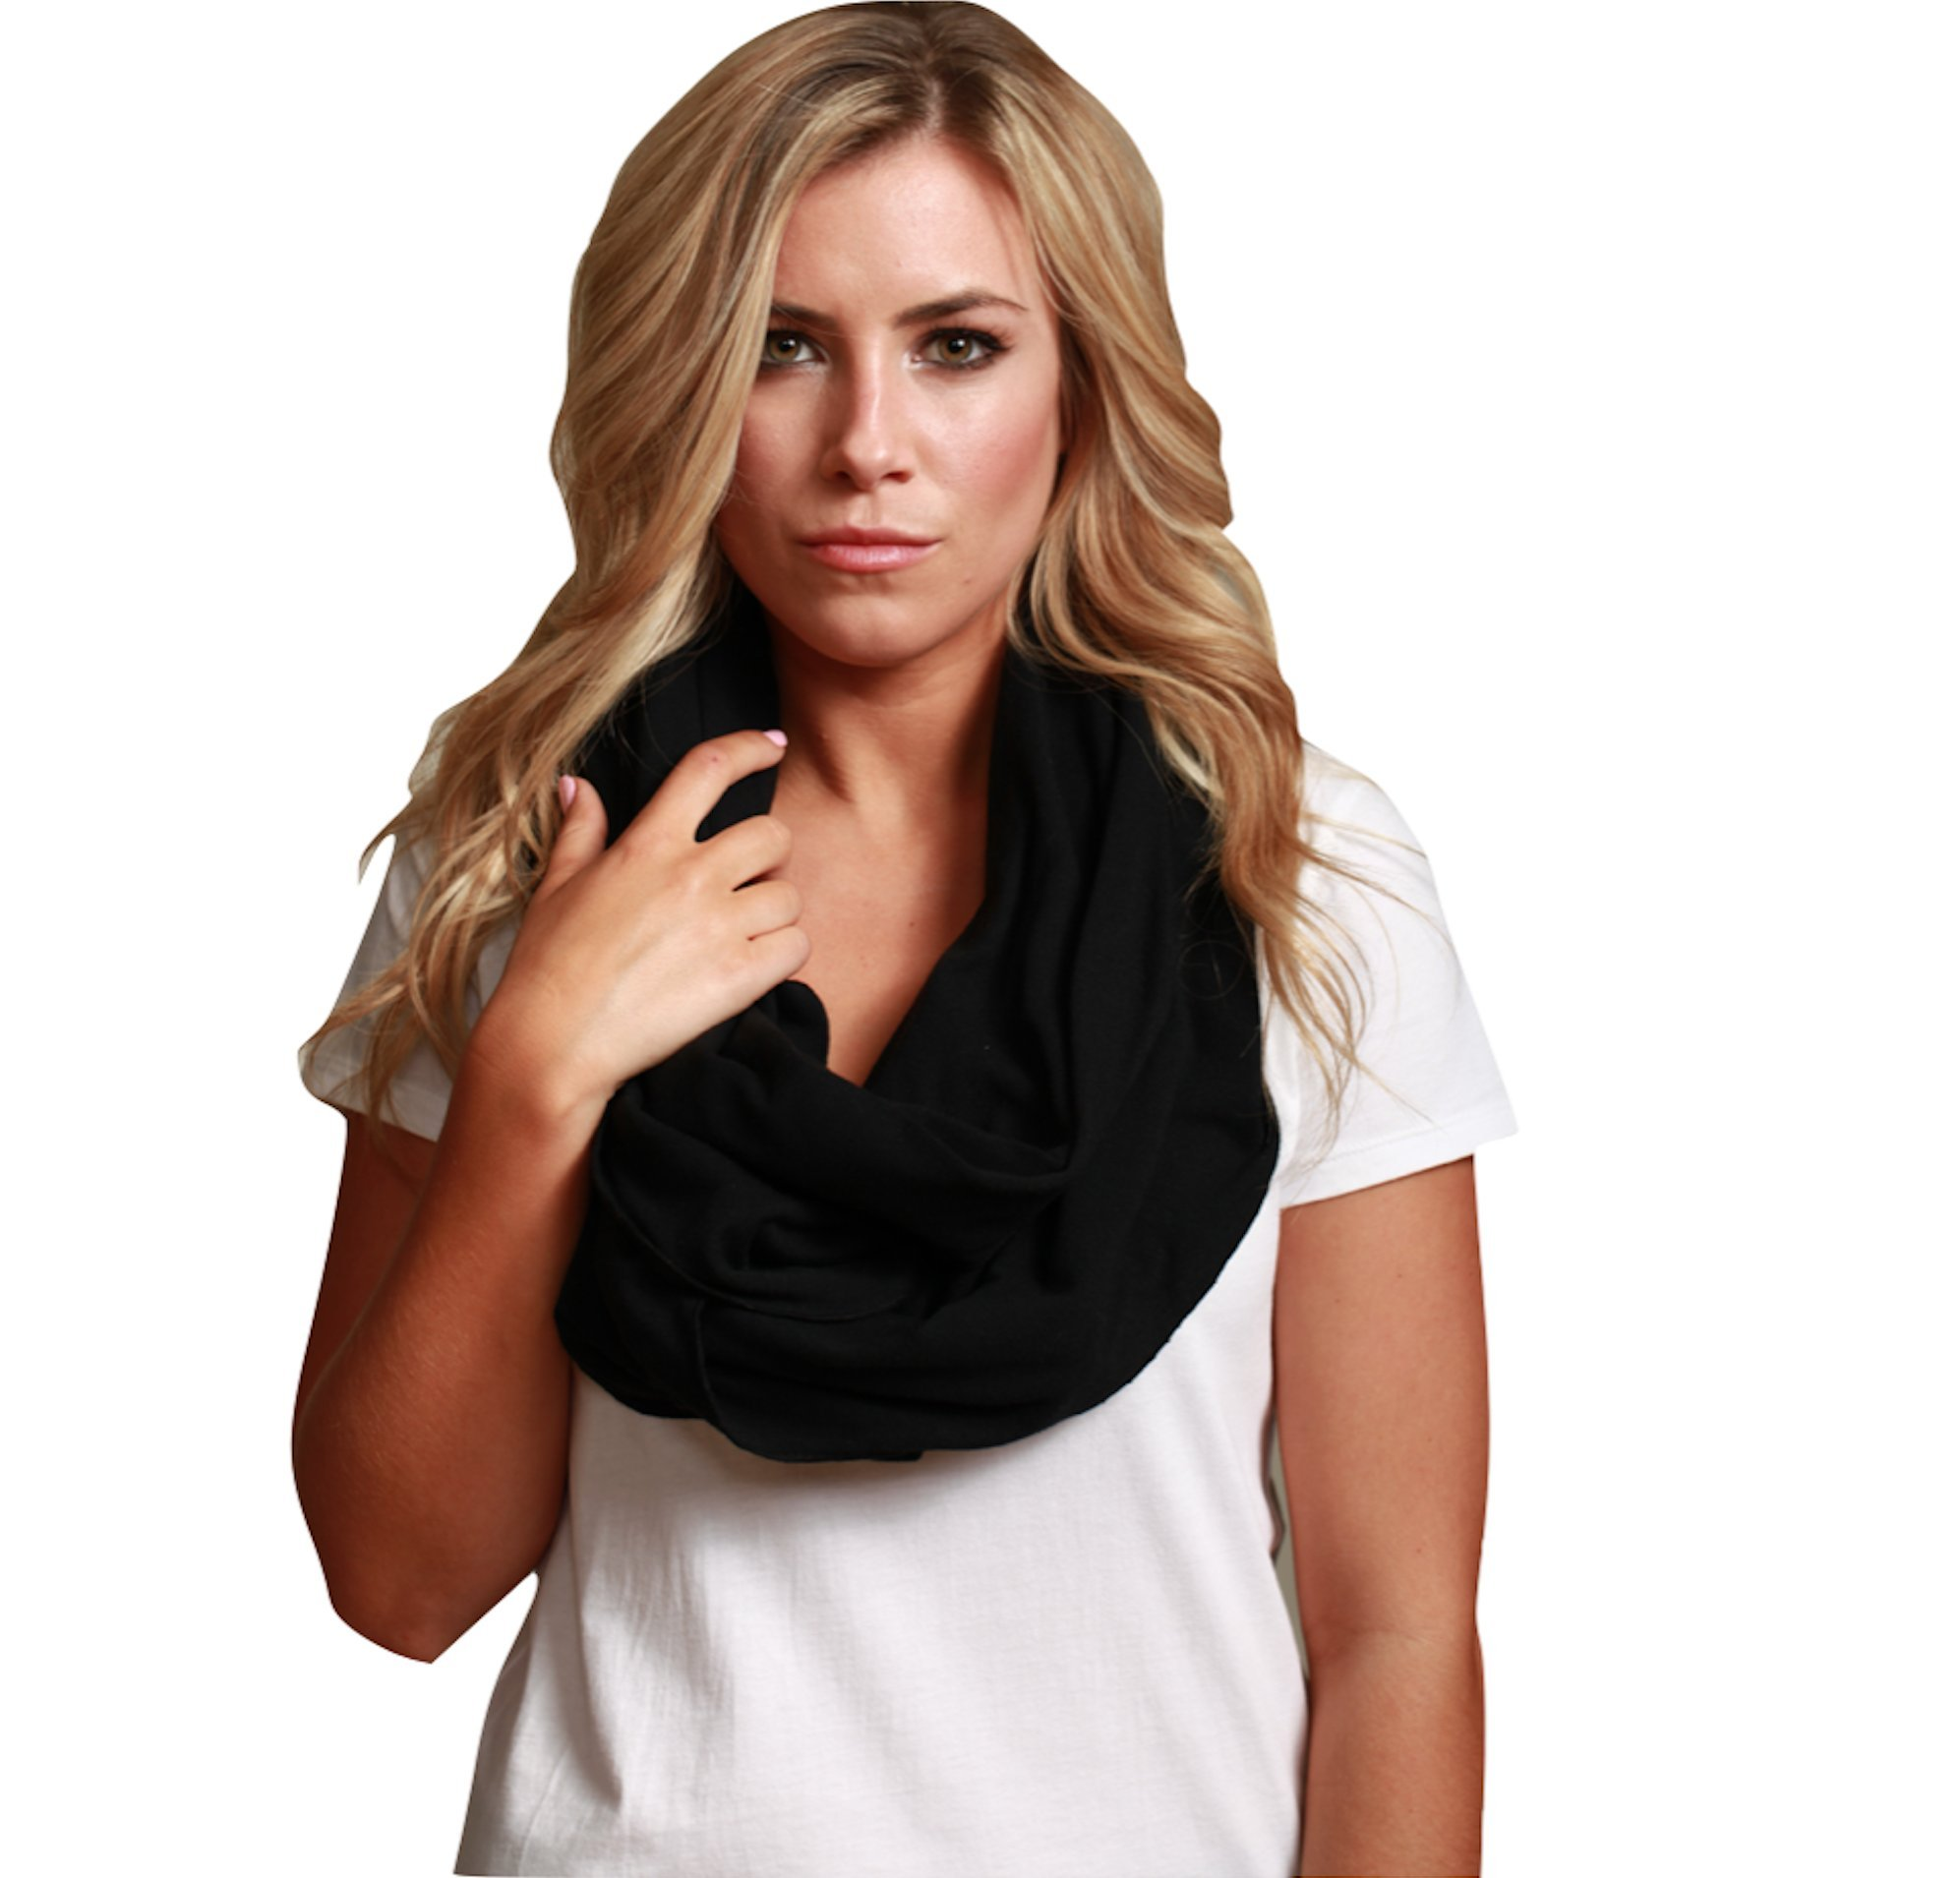 Sleeper Scarf 2-in-1 Travel Scarf and Inflatable Neck Pillow (Black, Traditional Inflate) by Sleeper Scarf